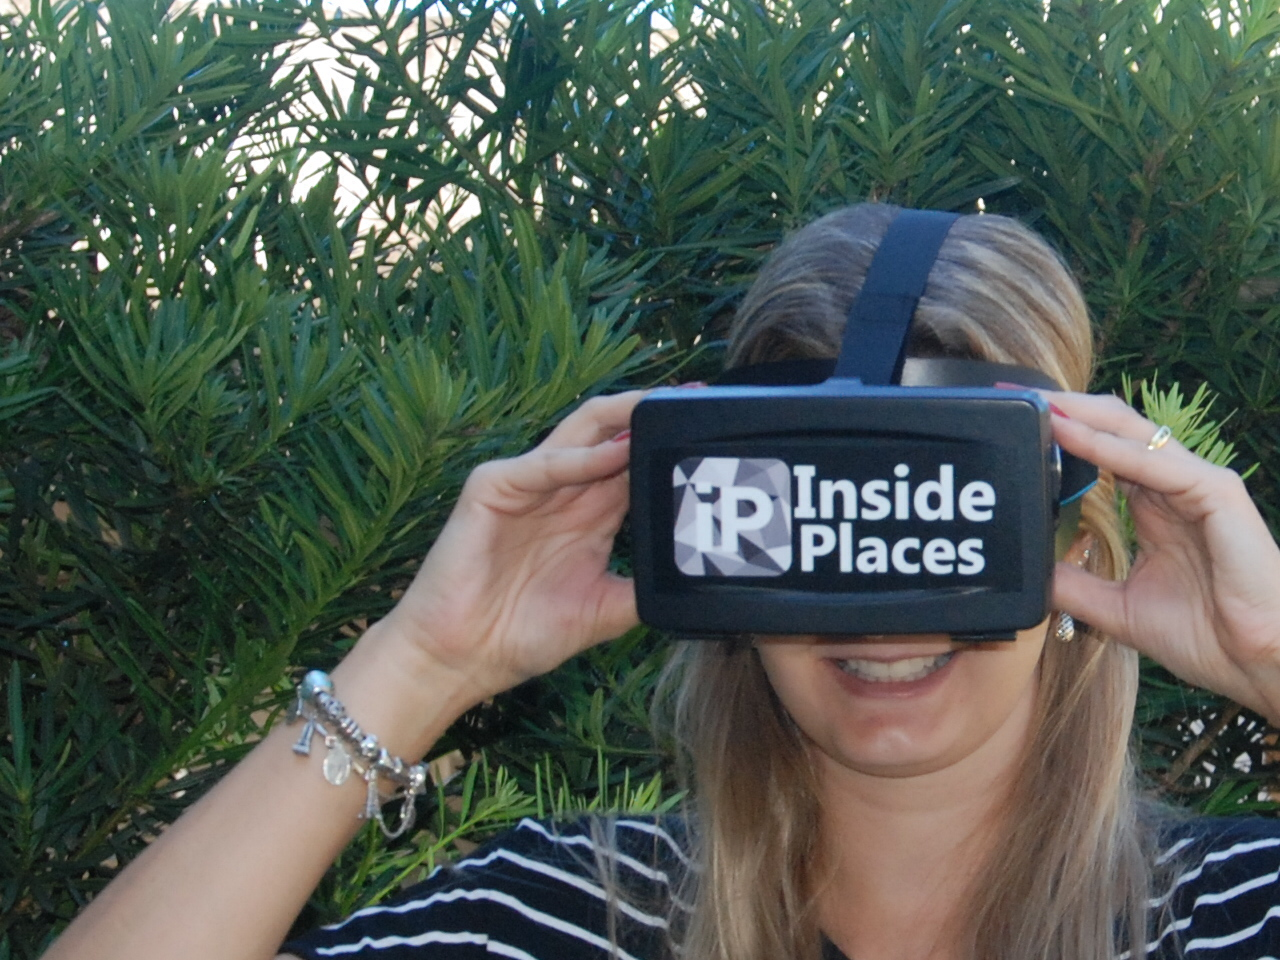 Realidade Virtual - inside places